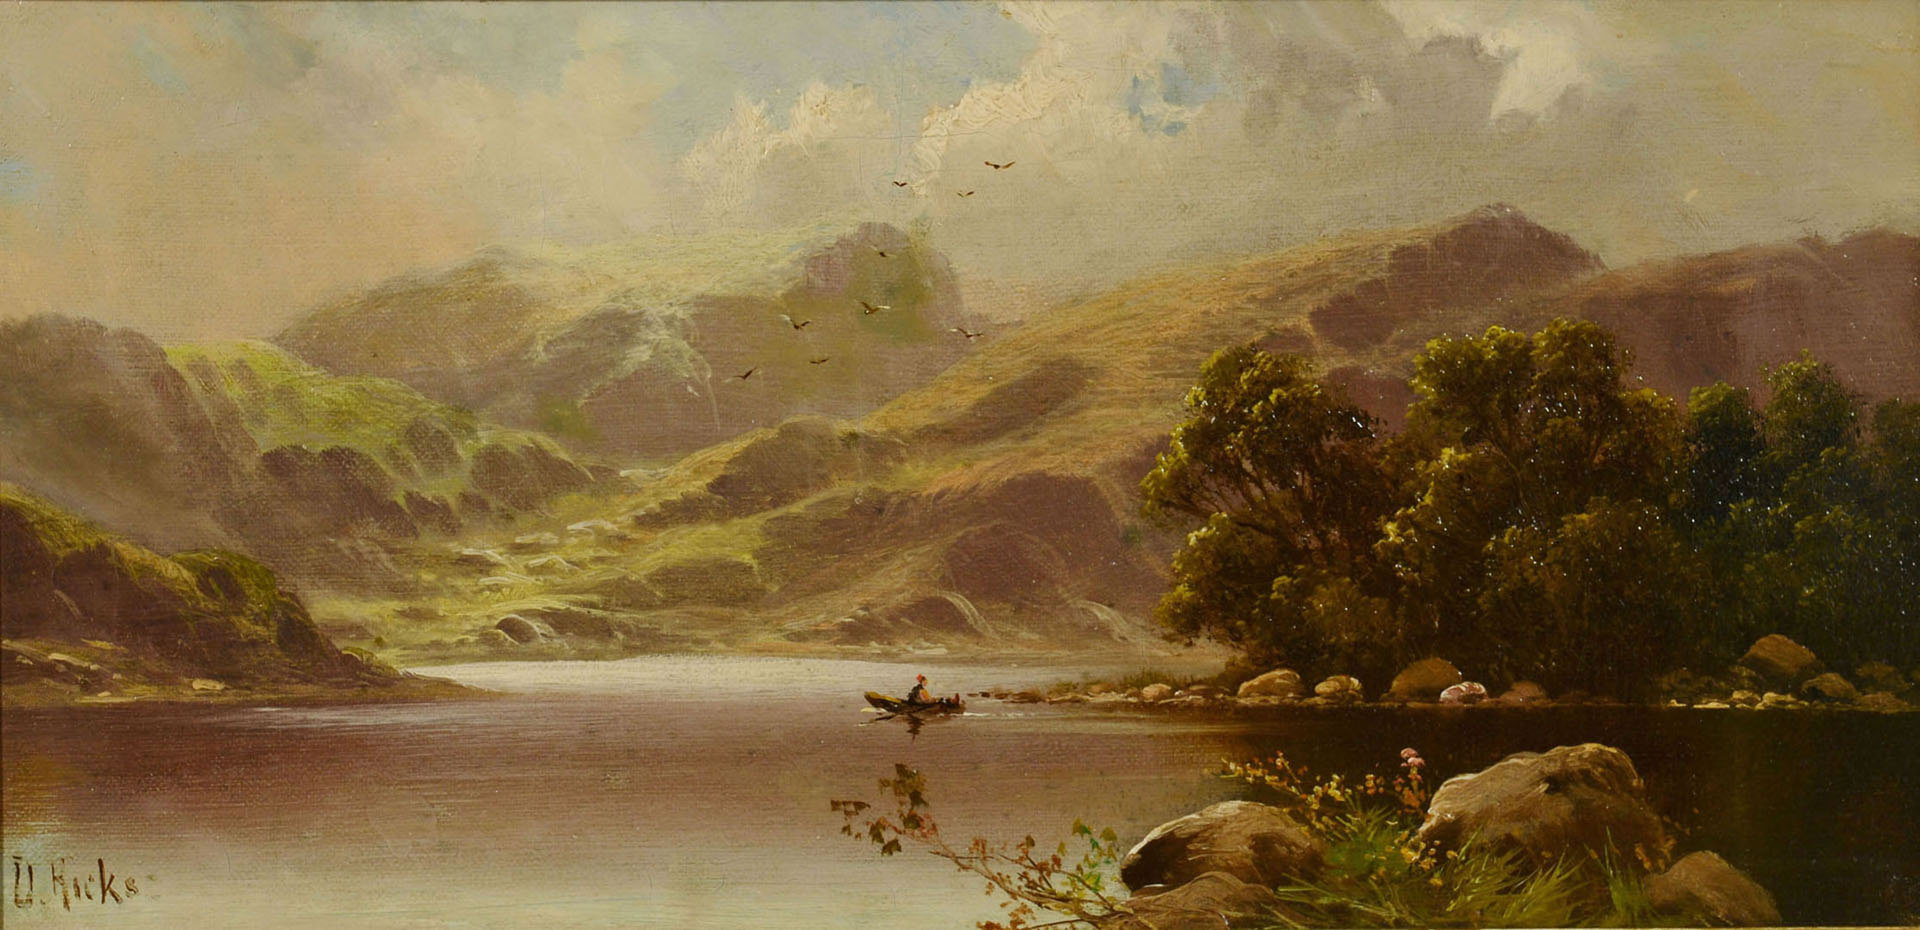 Lot 41: David Hicks, Pair of English oil landscapes